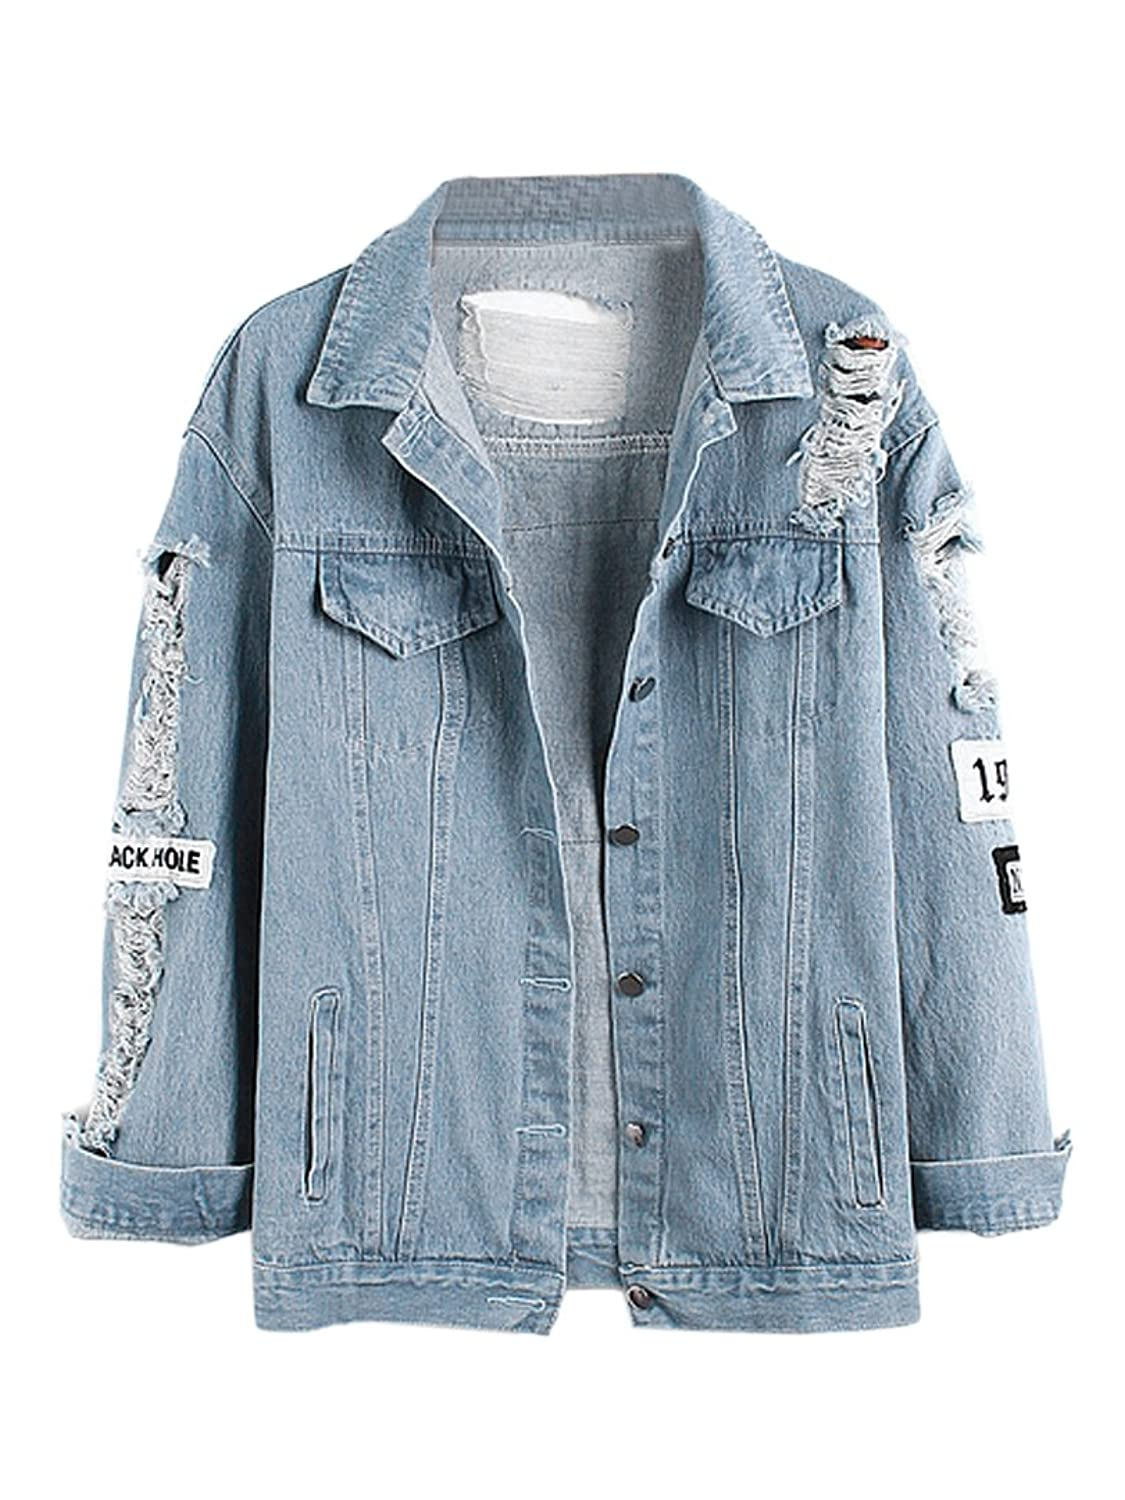 f400f3f583 Stylish colorful butterfly patches on the shoulder and front Functional  pockets Button down closure  Light wash denim fabric Good quality and fine  work